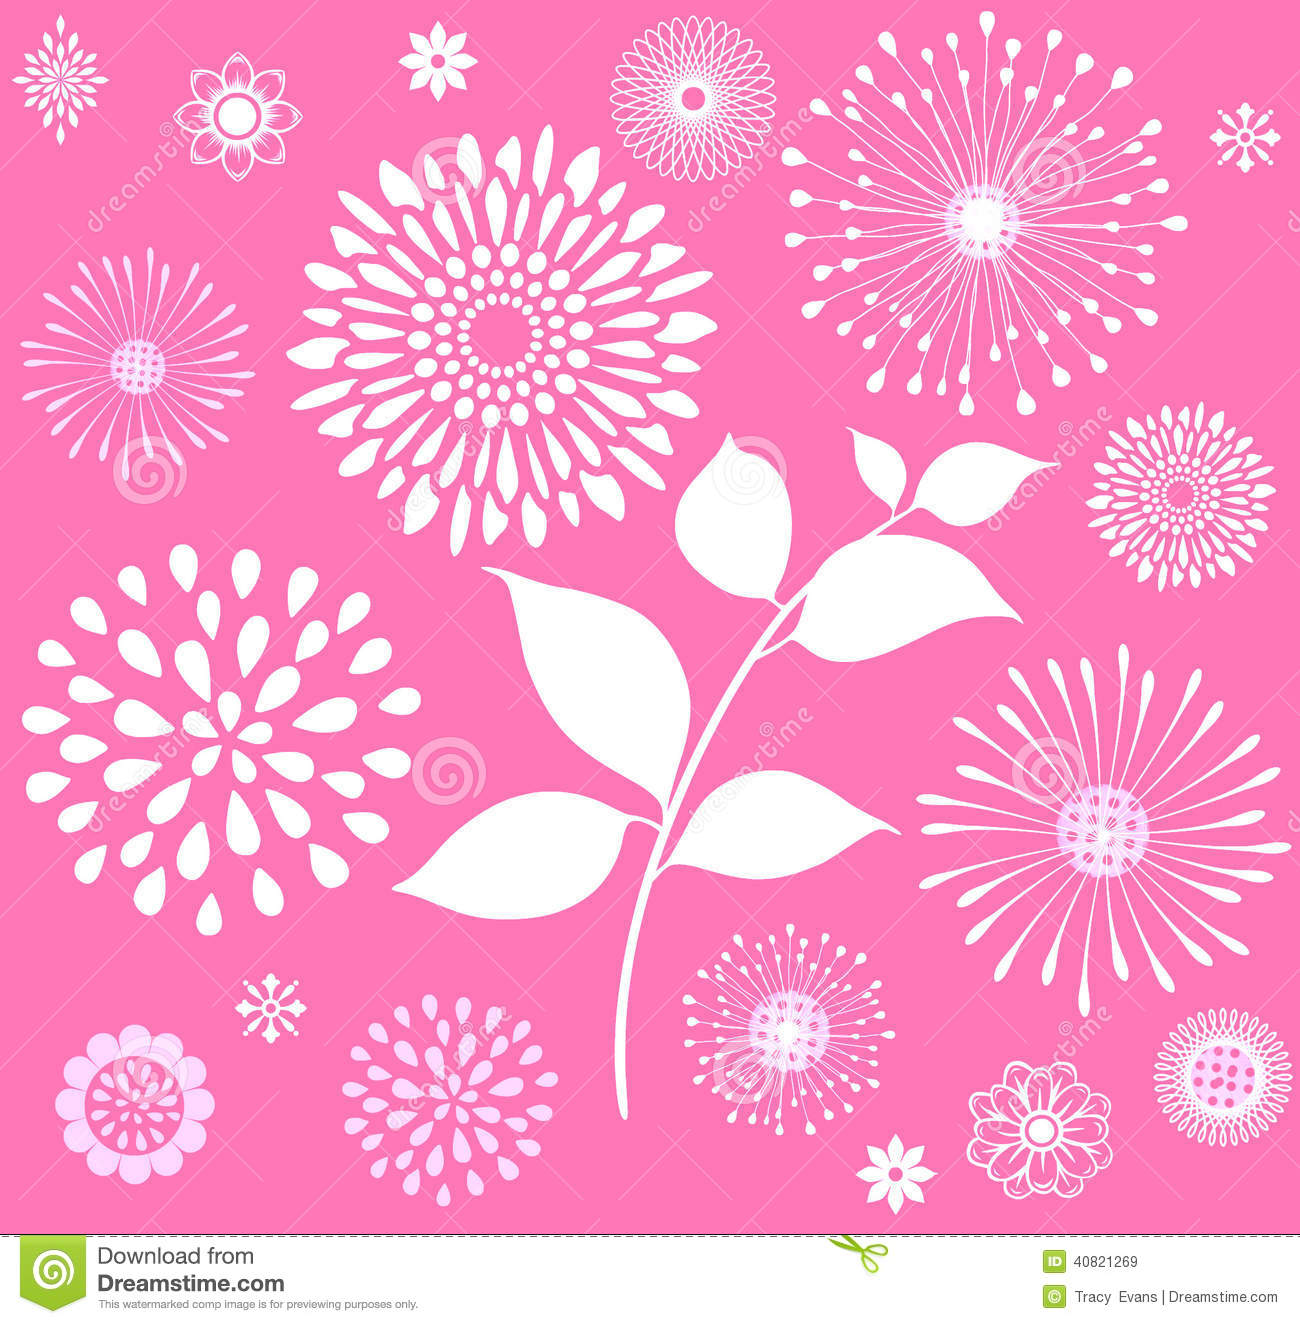 Pink background clipart #1